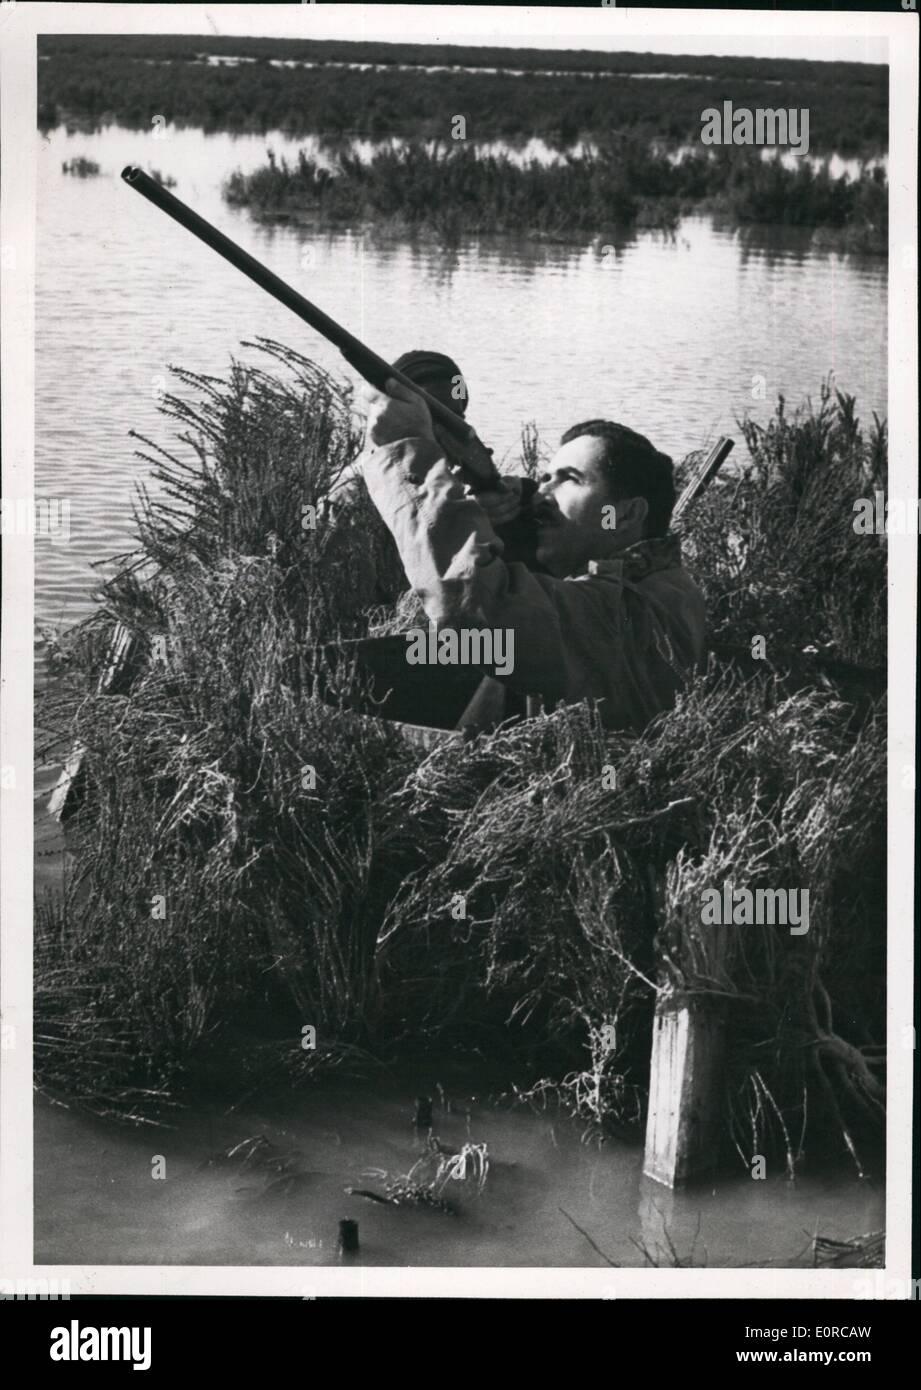 Jan. 01, 1959 - The Lebanese Premier, an excellent sportsman shooting the canard at Lake Mariout. ne Pict - Stock Image